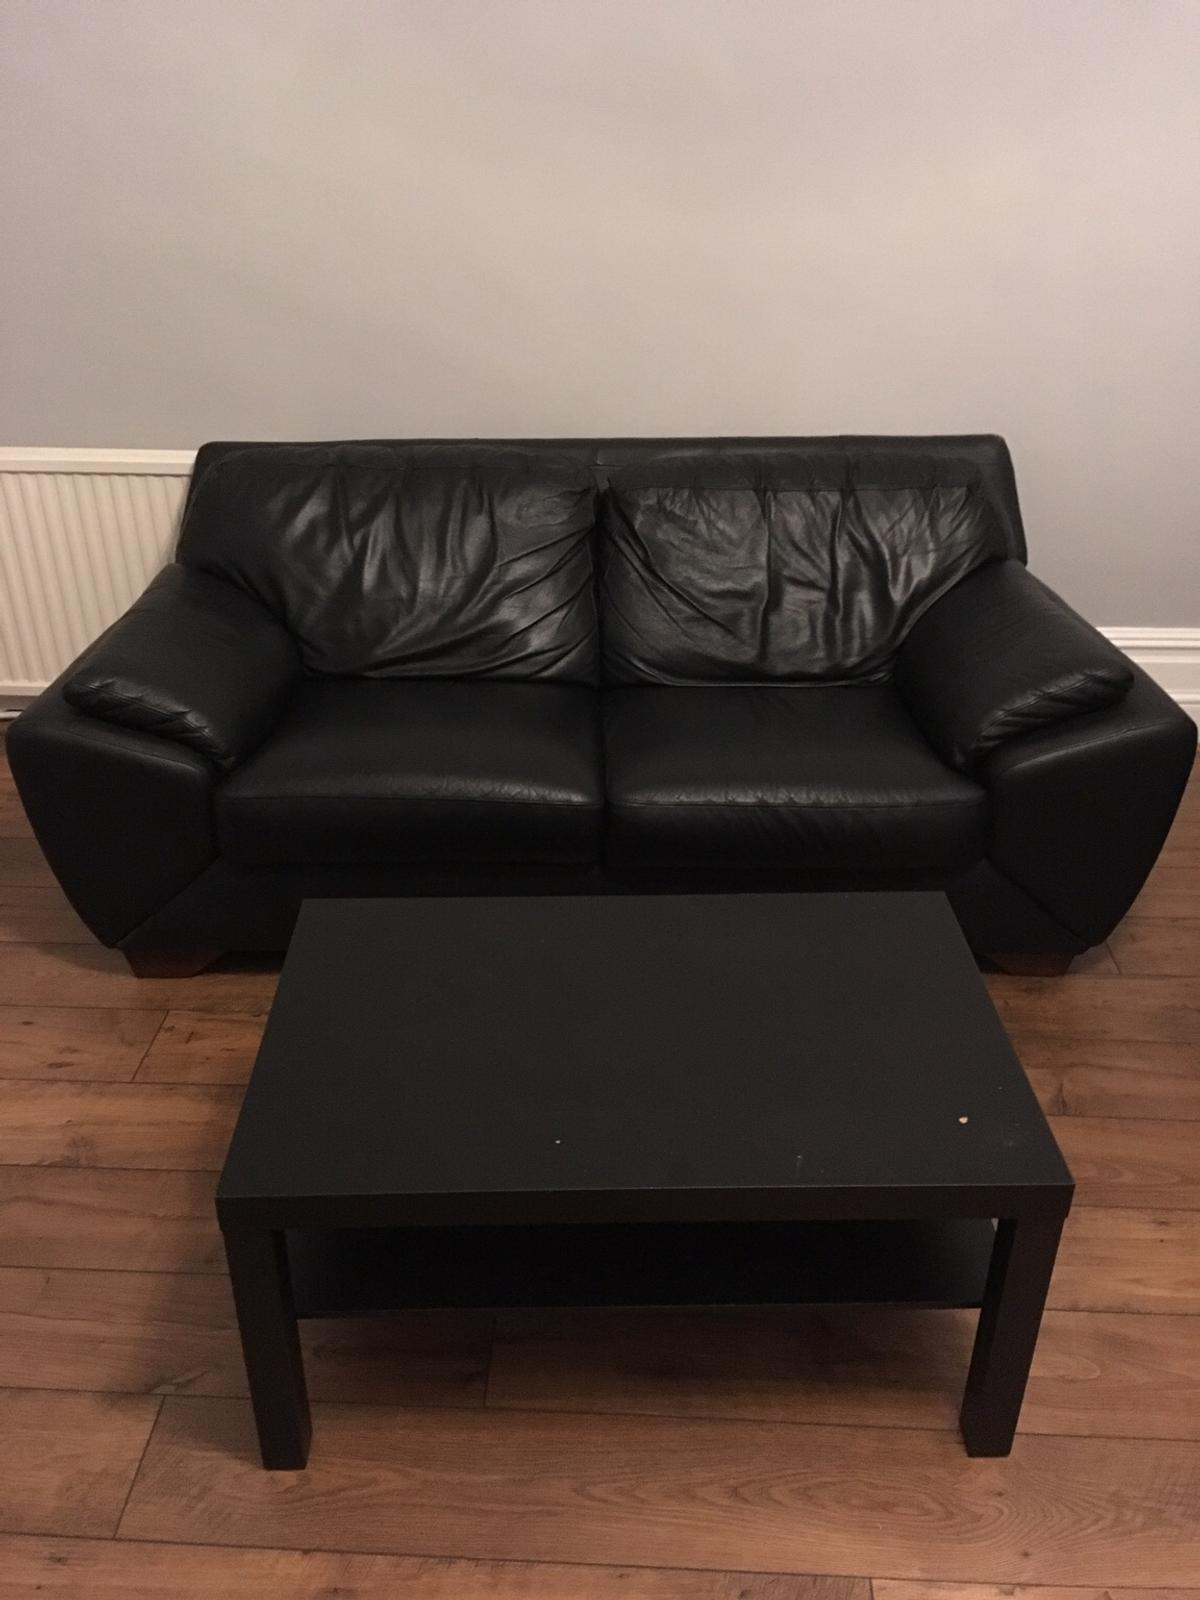 Comfortable black leather two seater sofa